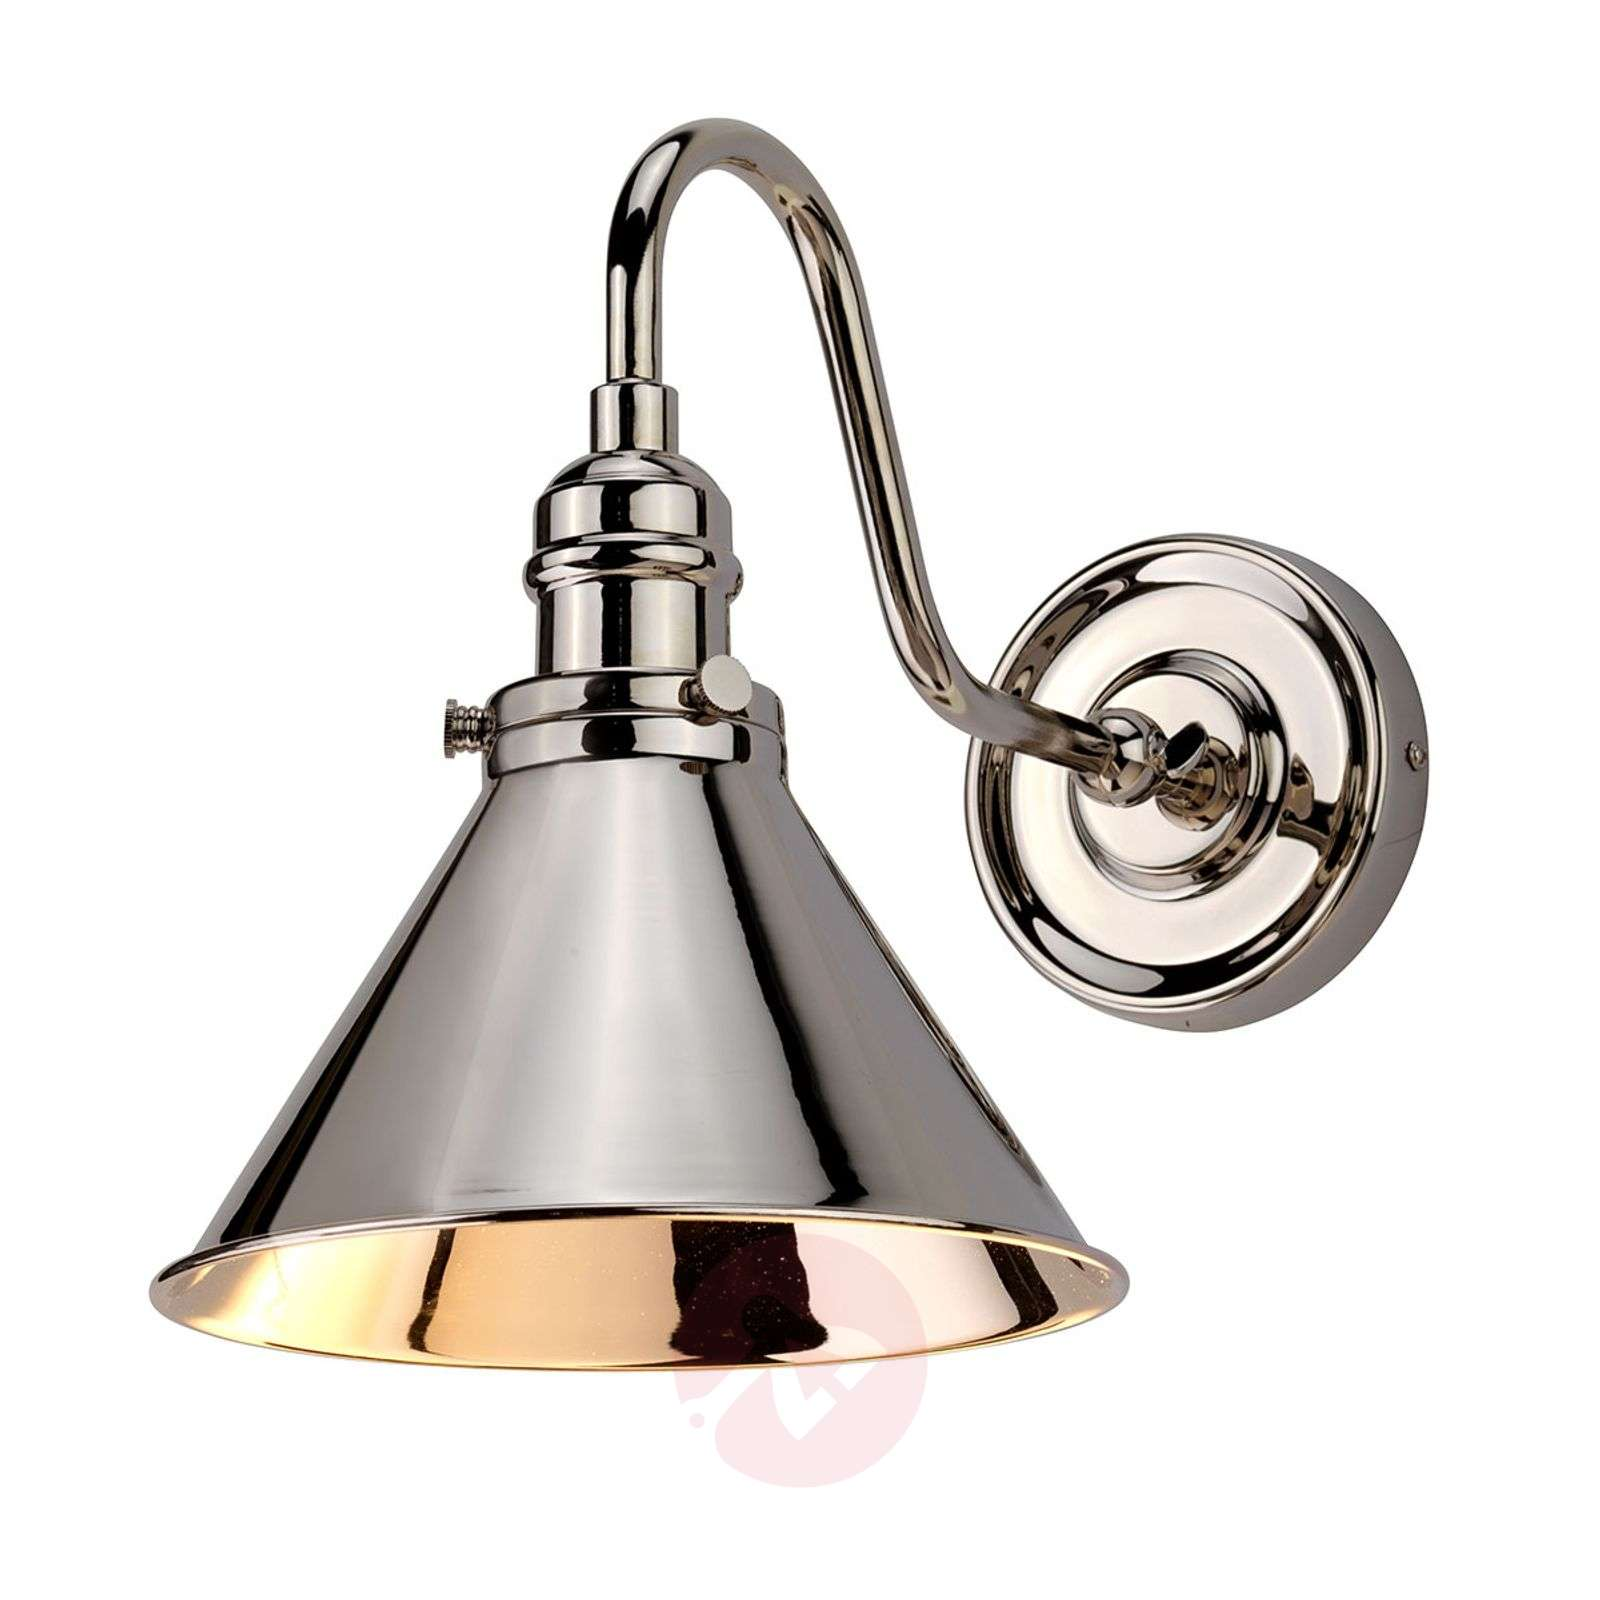 Wall light Provence in a polished nickel finish-3048897-01